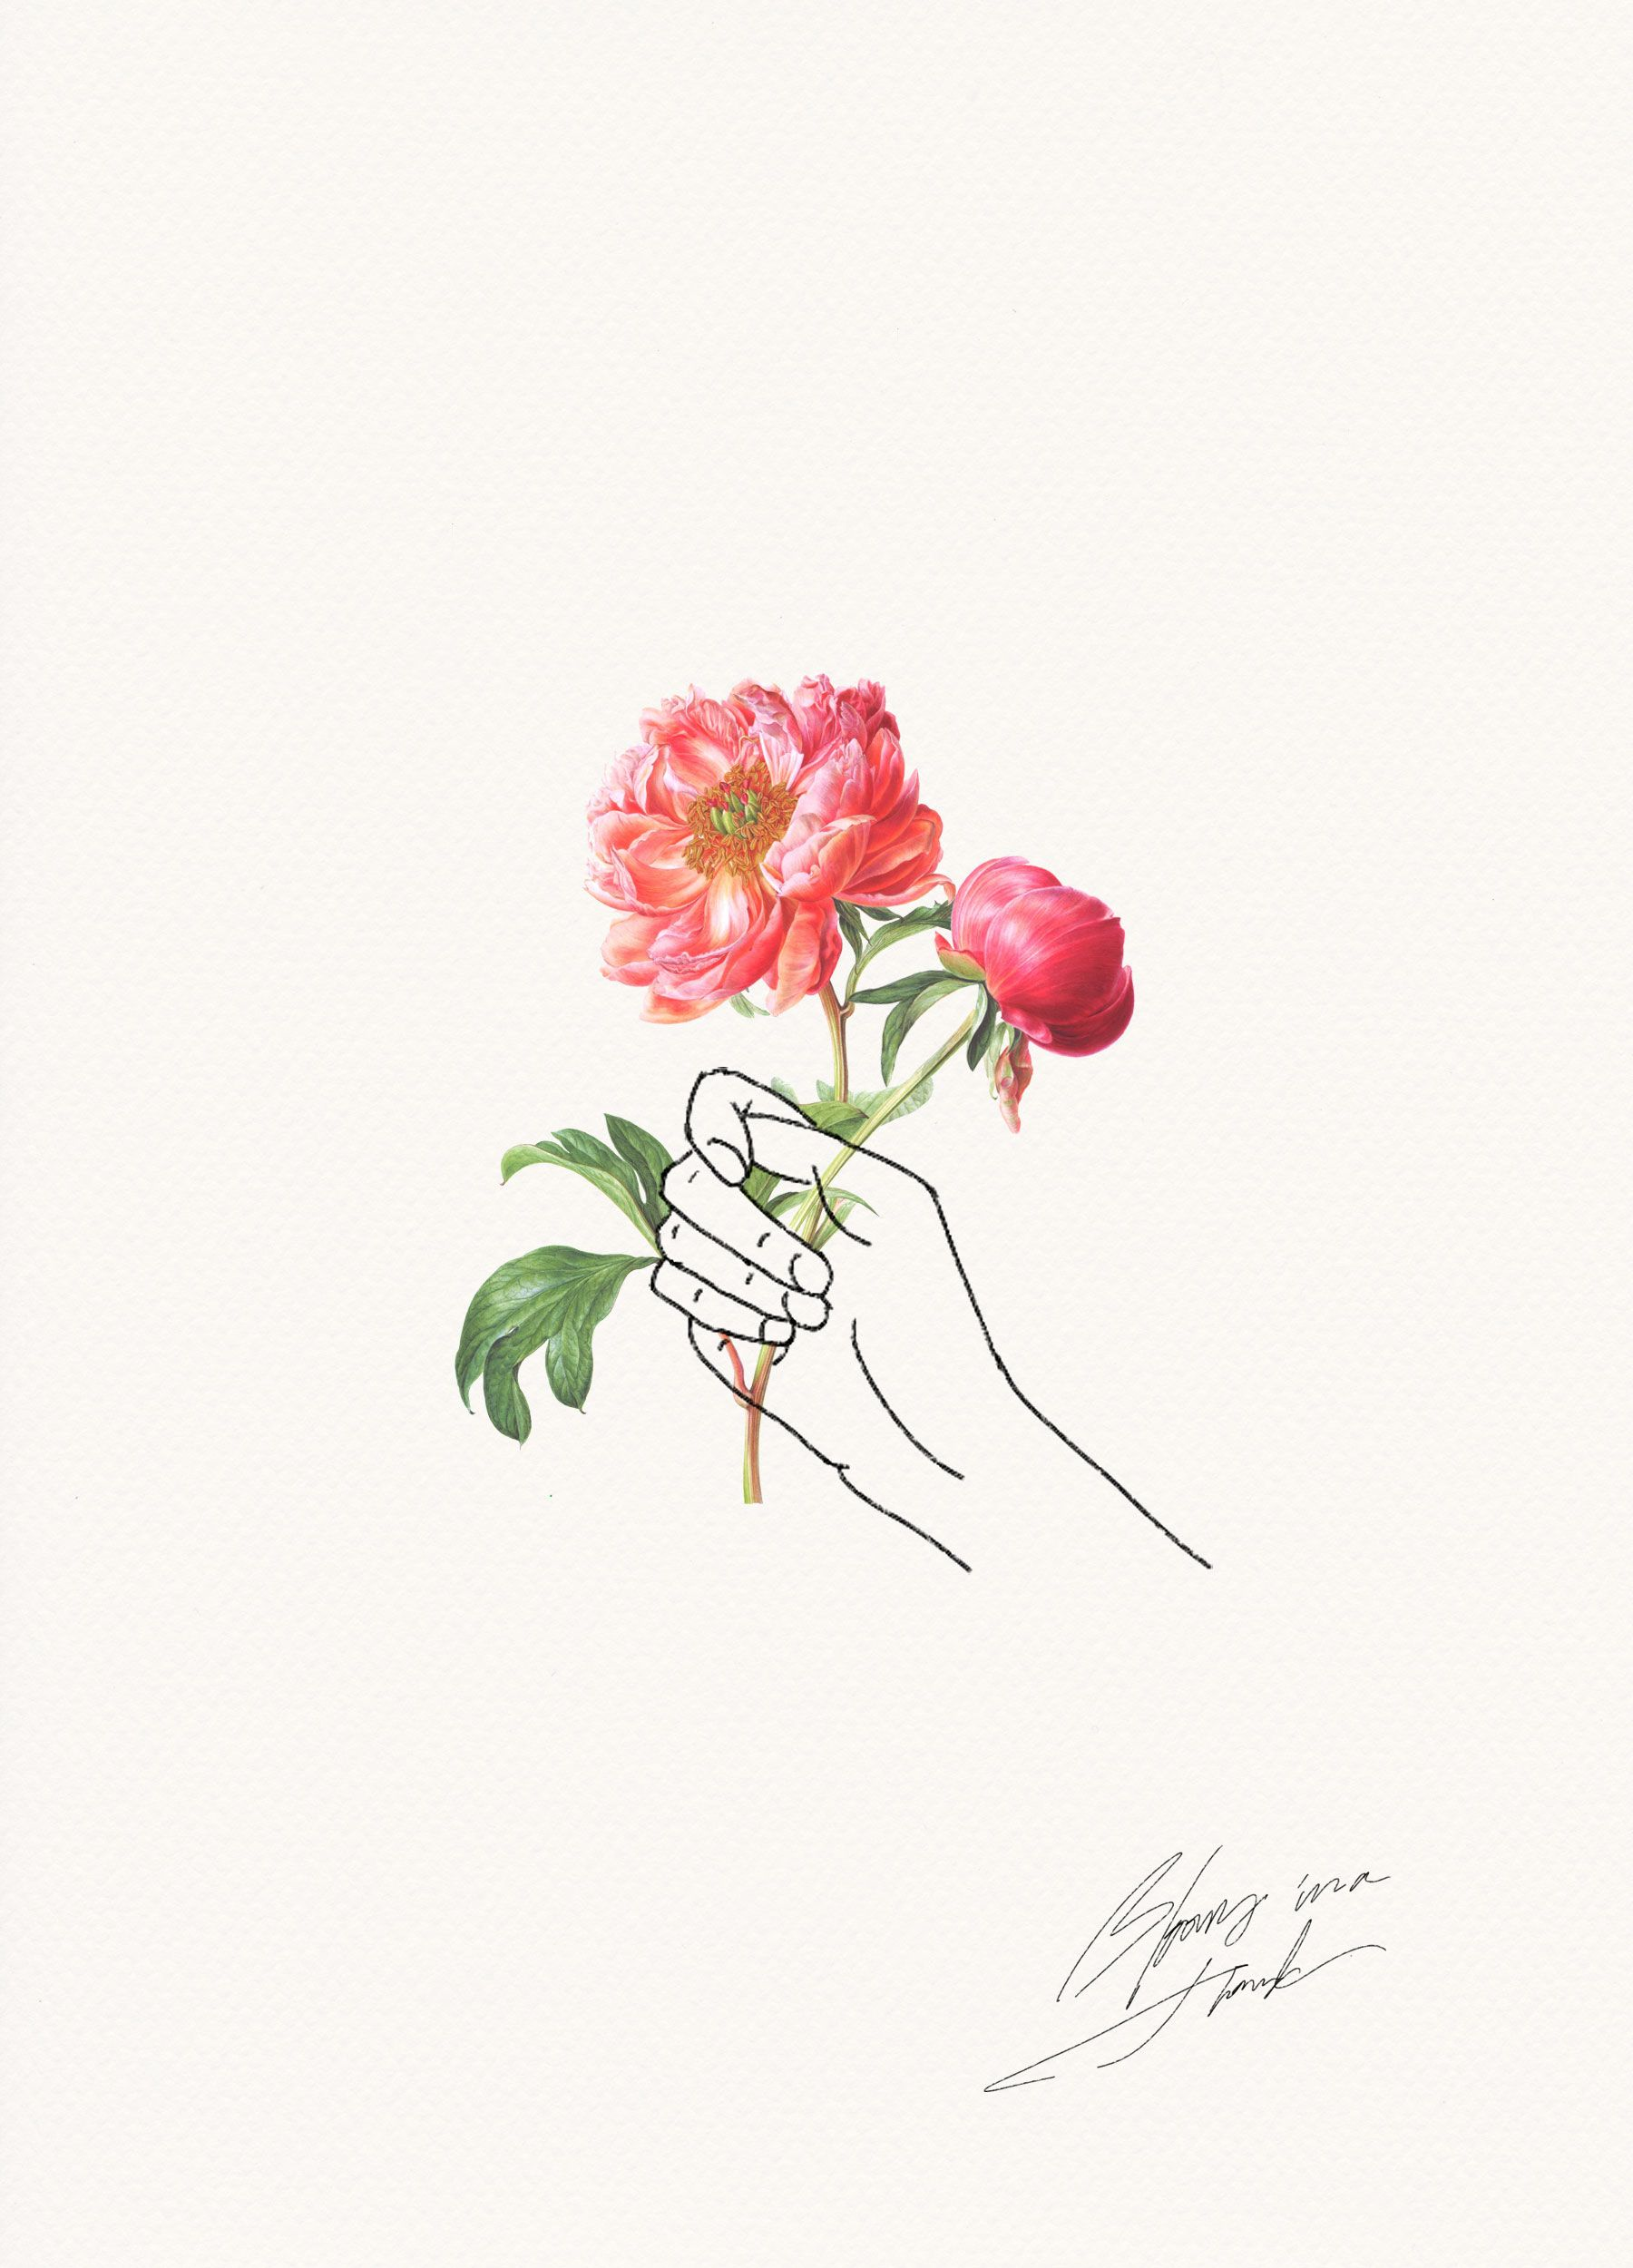 Holding Flowers Floral Pinterest Art Drawings And Illustration